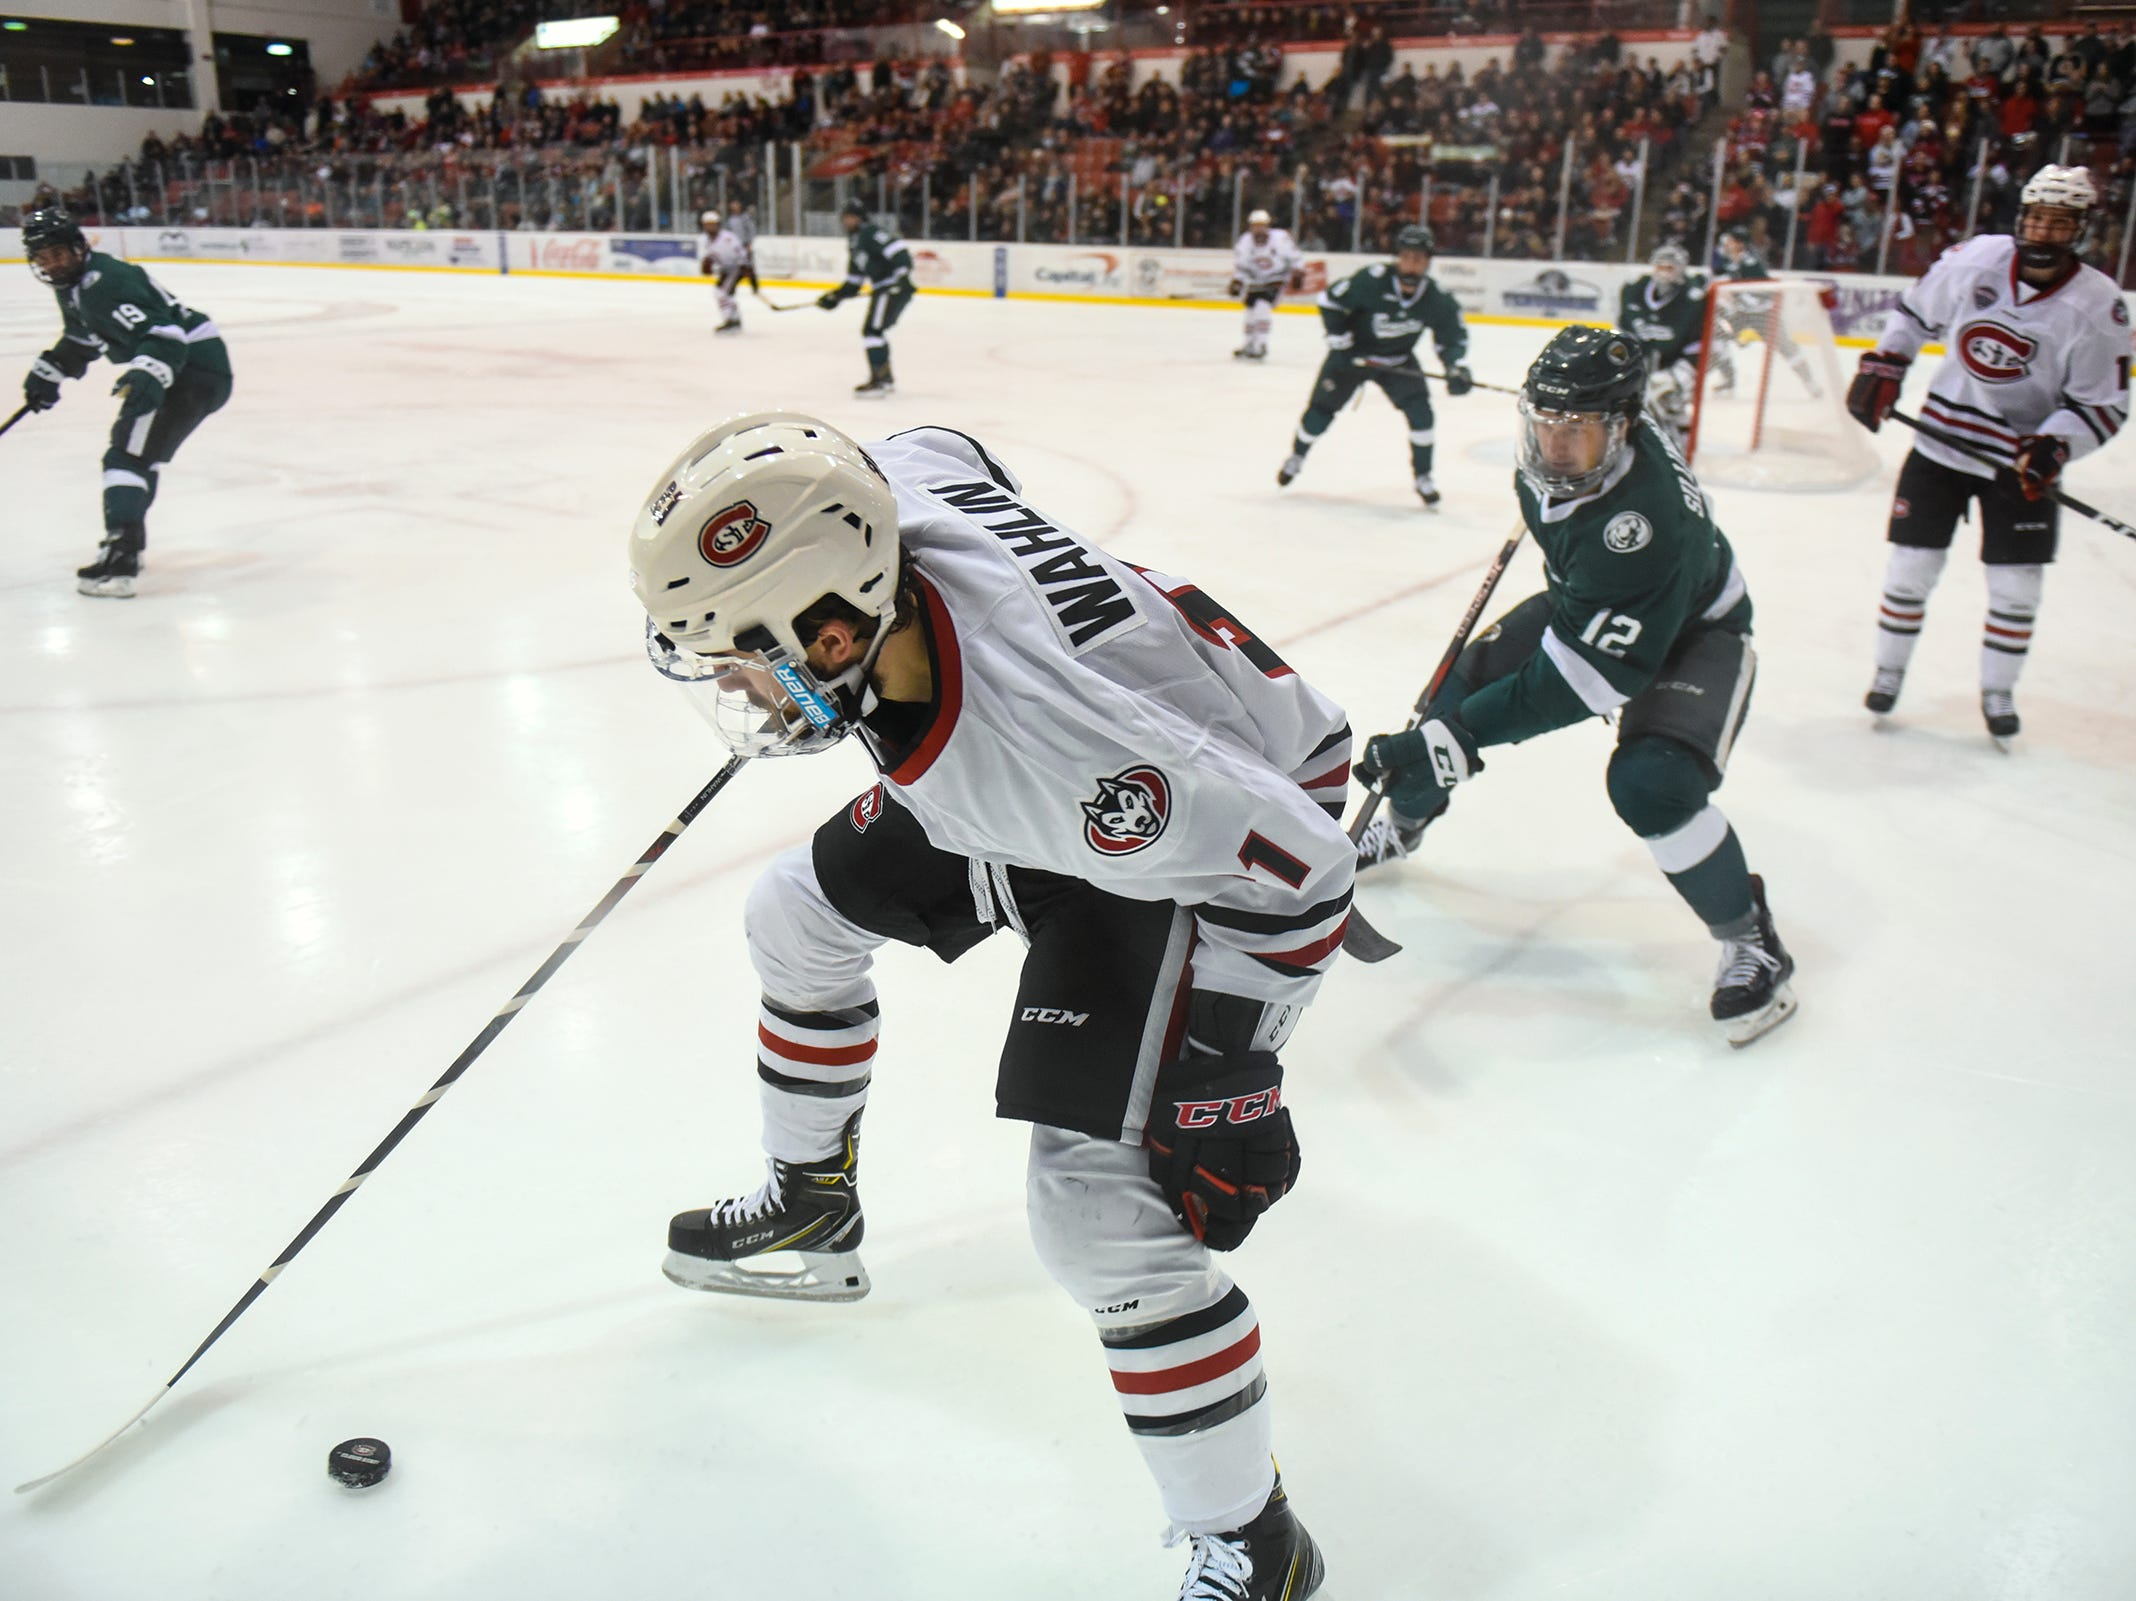 St. Cloud State's Jake Wahlin works with the puck along the boards during the first period of the Saturday, Nov. 17, game against Bemidji State at the Herb Brooks National Hockey Center in St. Cloud.